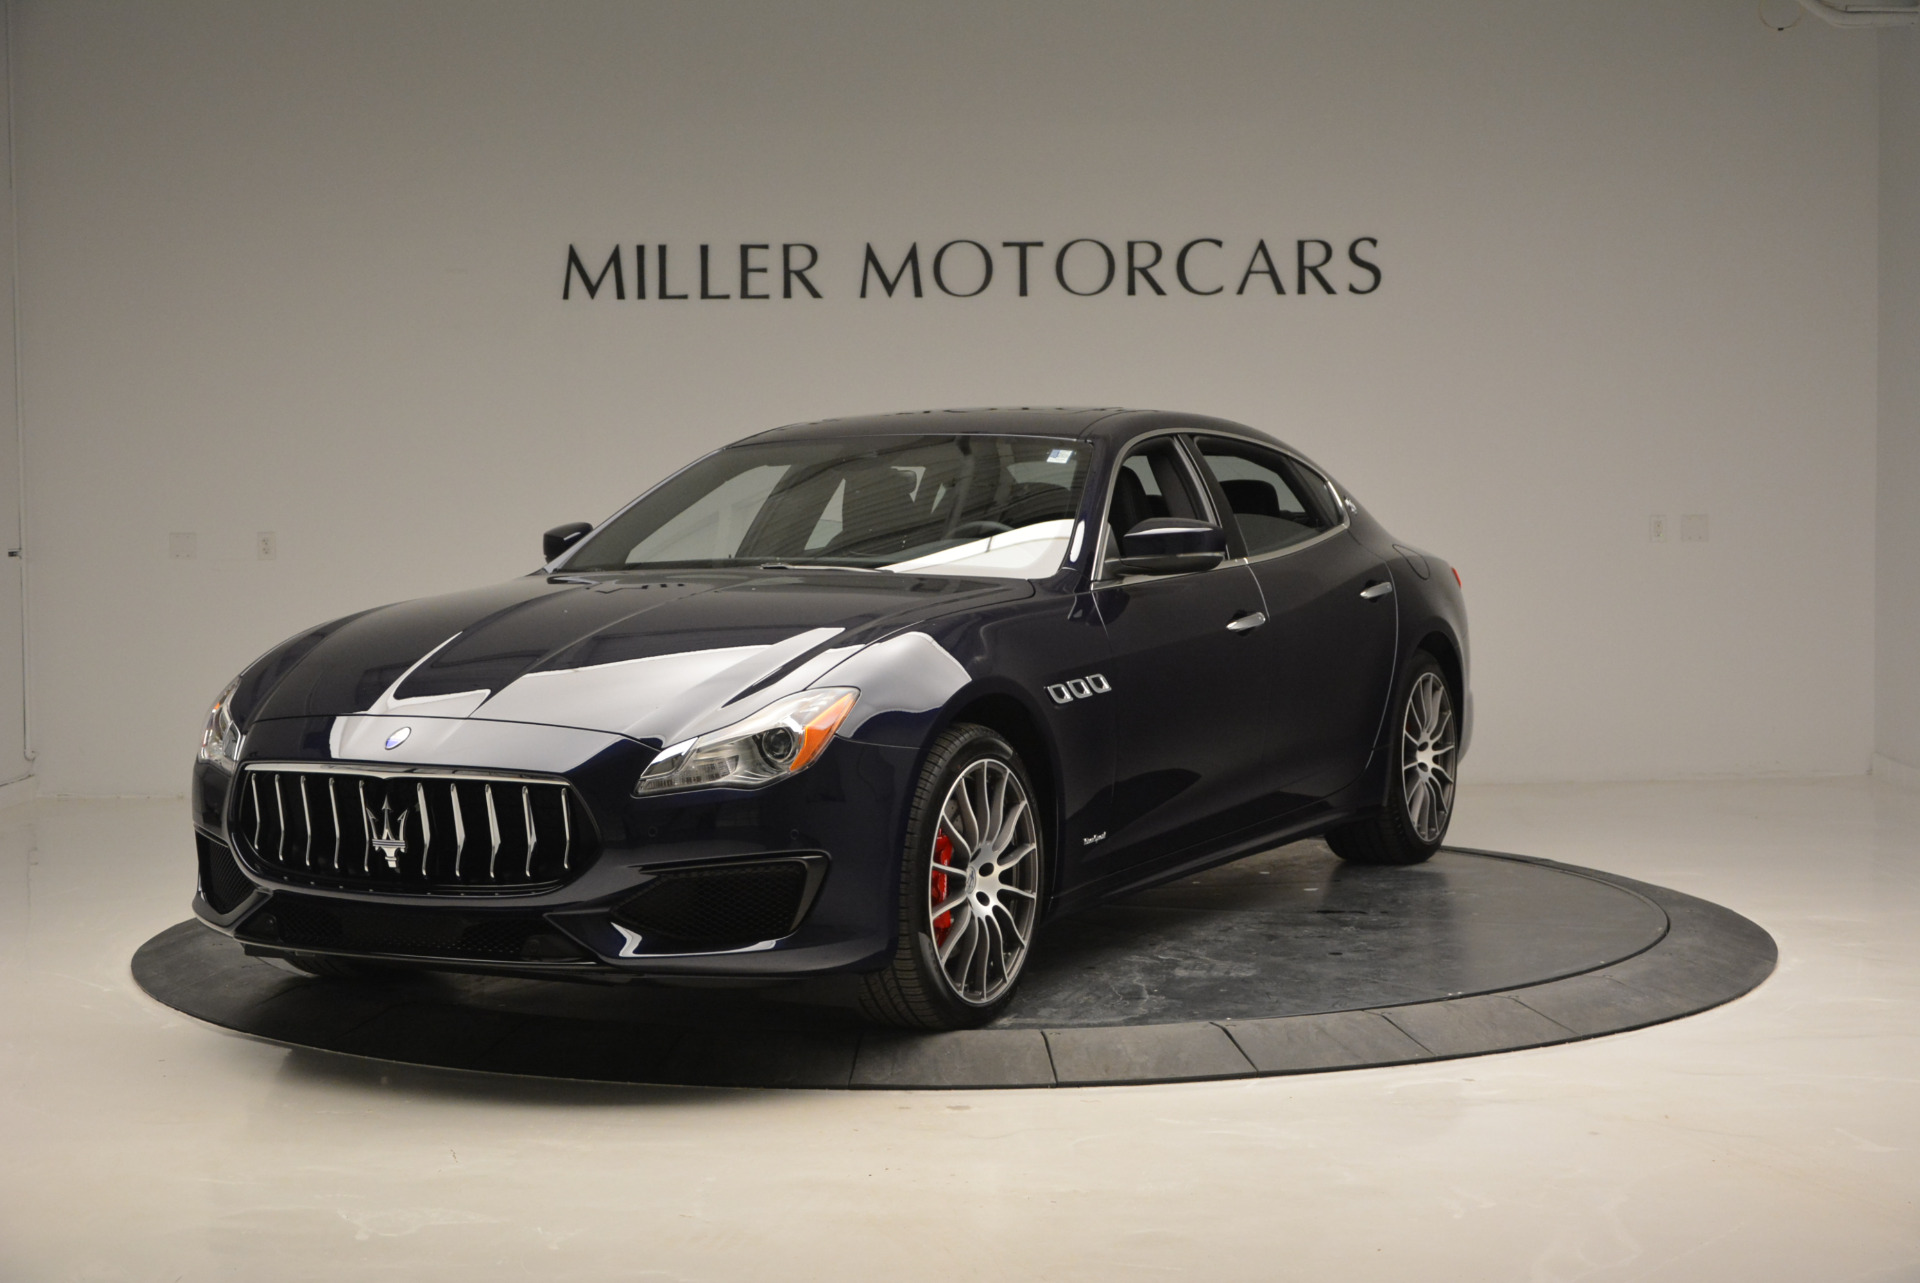 New 2017 Maserati Quattroporte S Q4 GranSport For Sale In Westport, CT 877_main